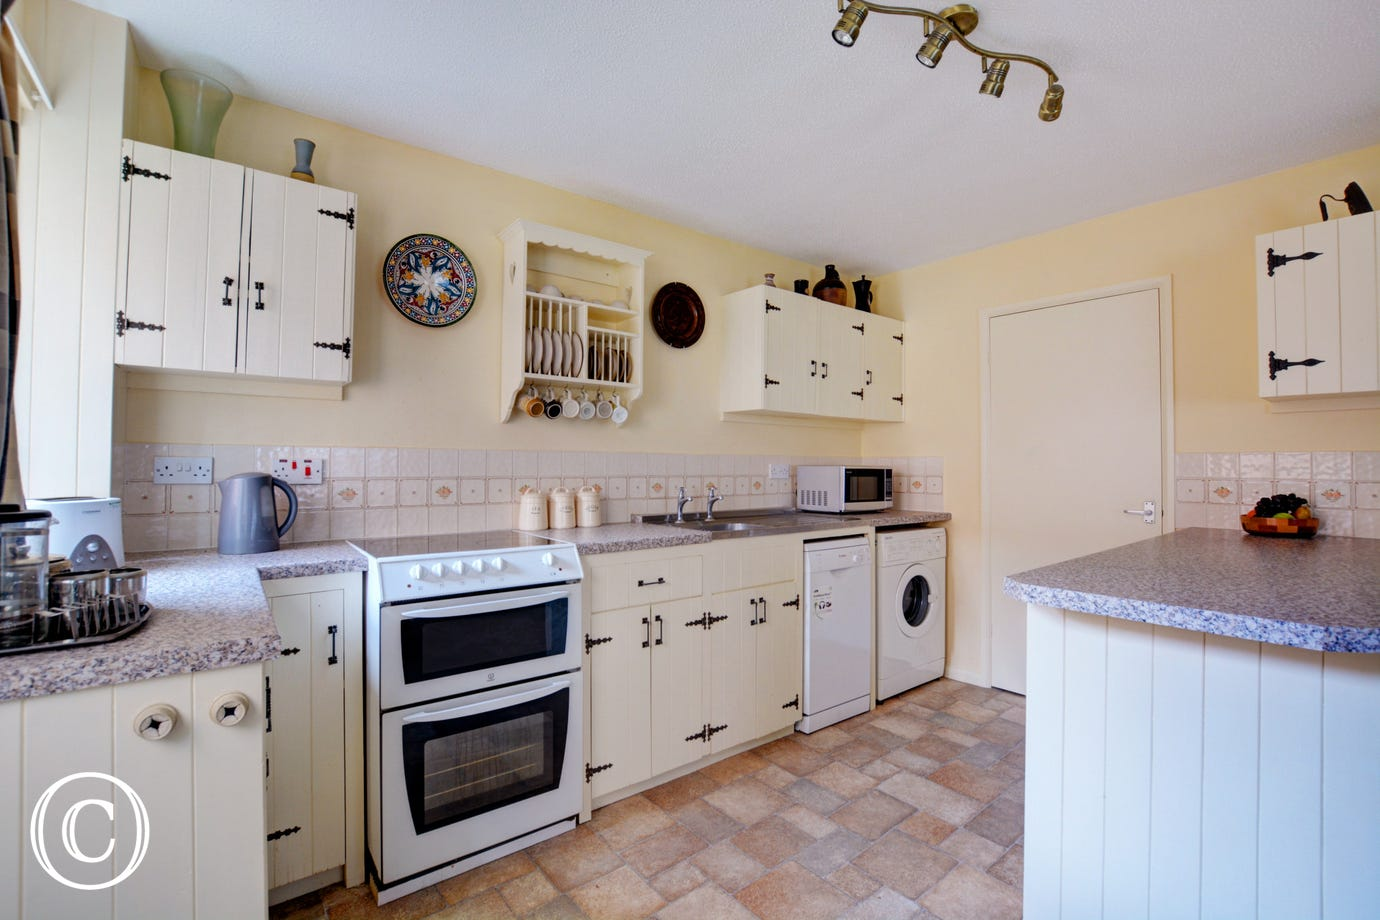 Light and spacious farmhouse style kitchen with most major appliances and well equipped, ideal for preparing meals